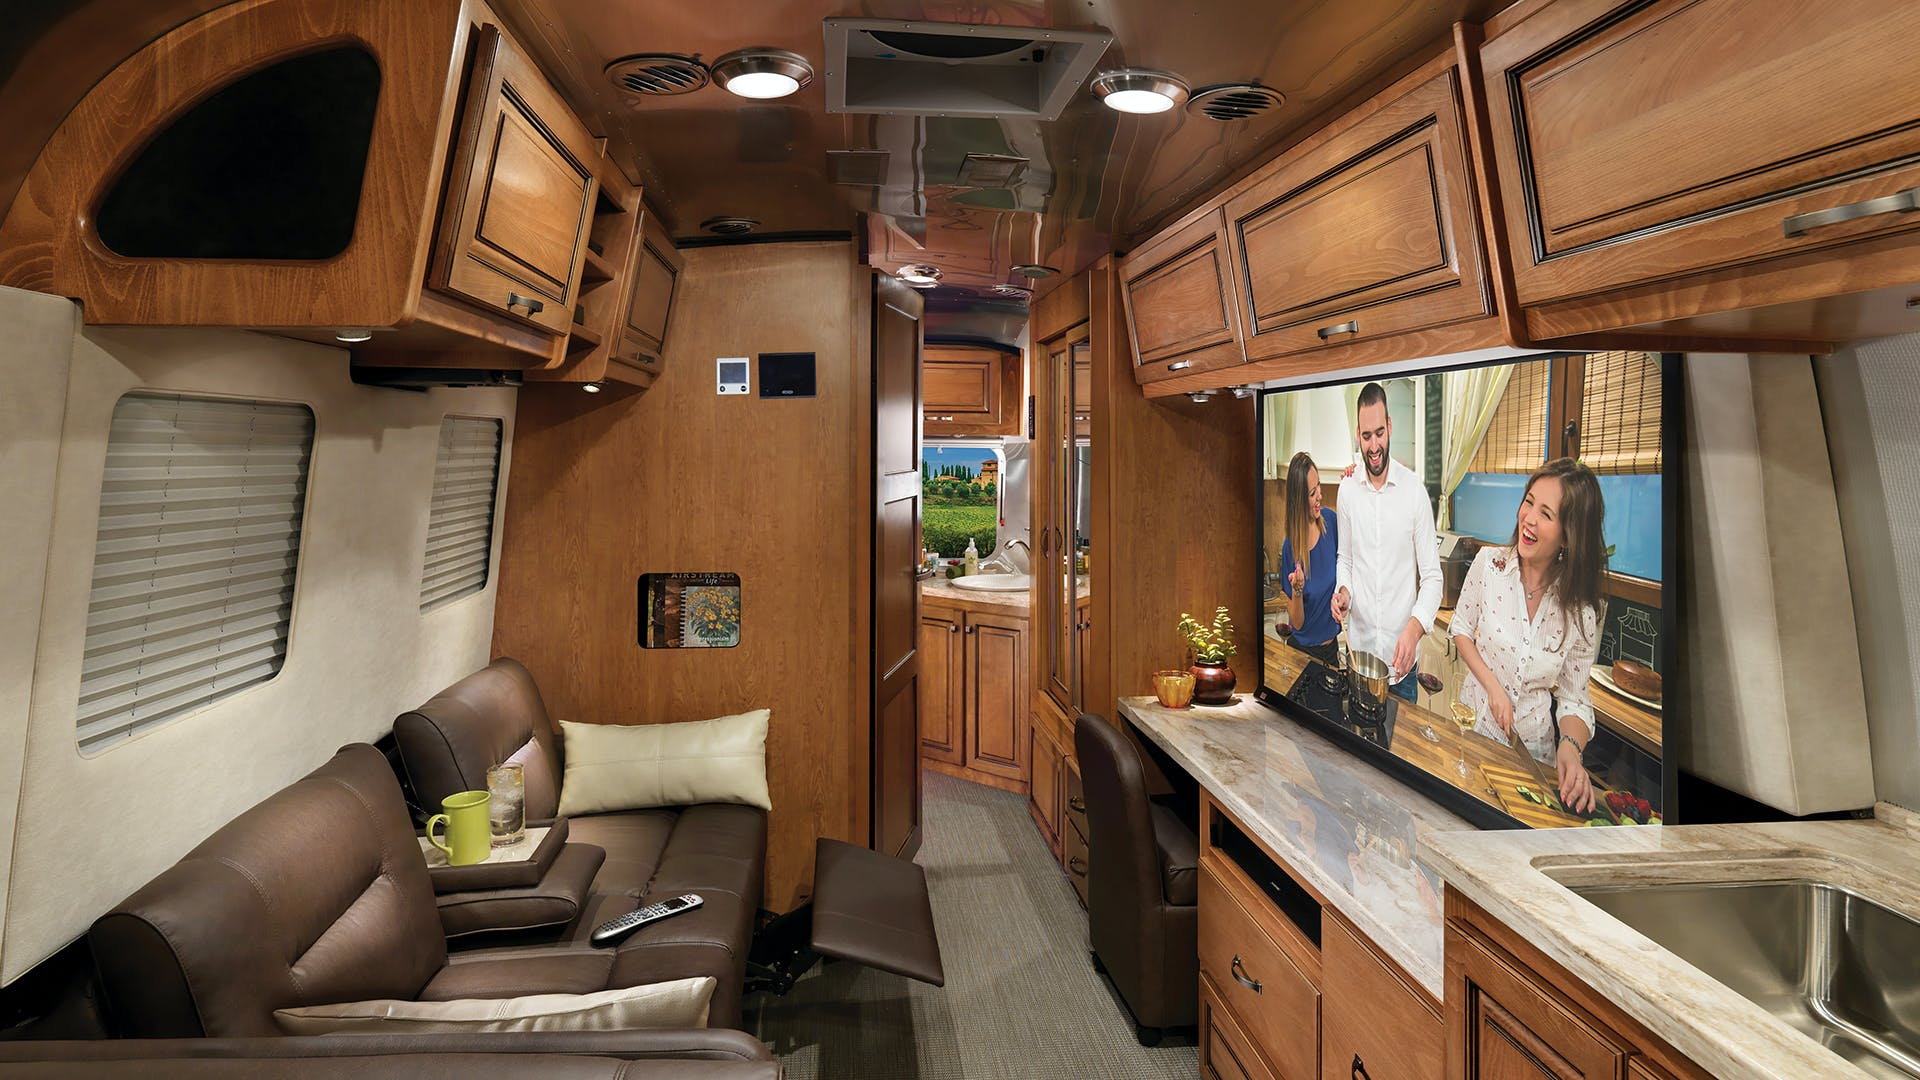 Airstream Classic Interior with Projection Screen TV